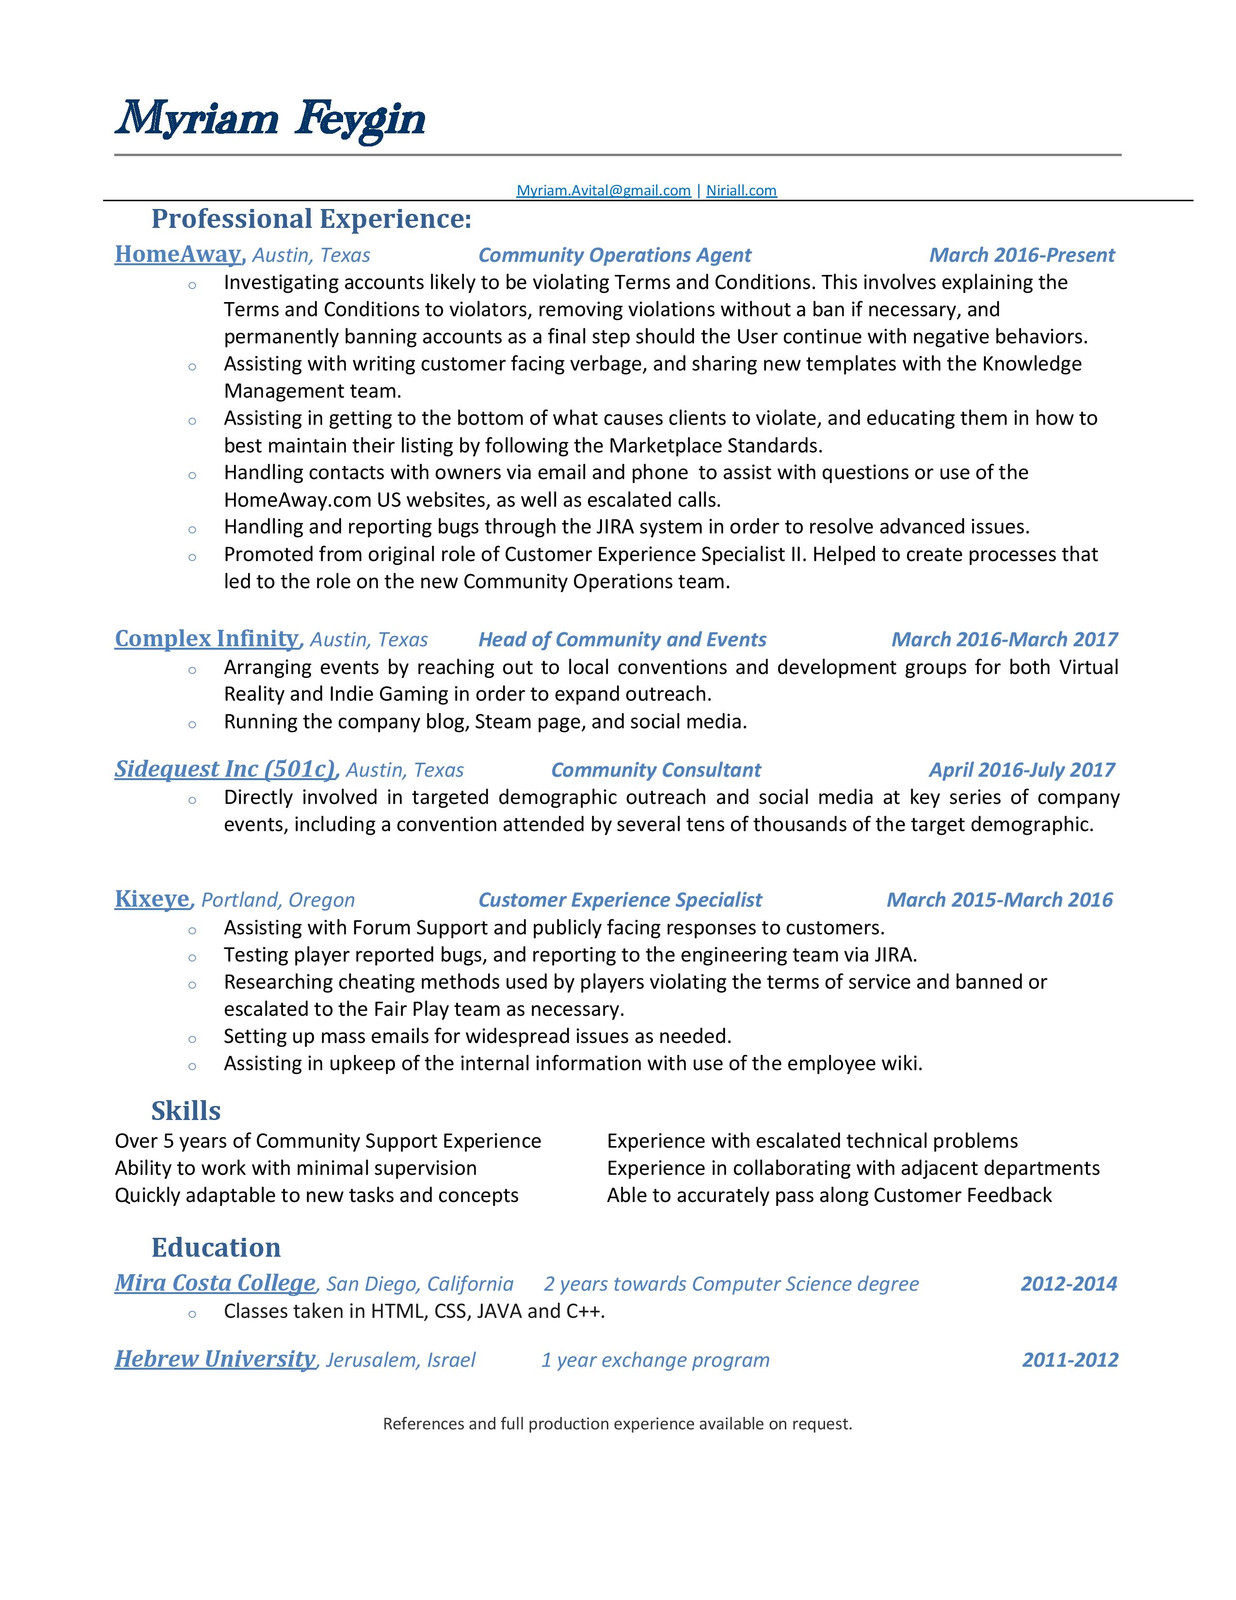 Best Resume Classes San Diego Pictures Inspiration - Example Resume ...